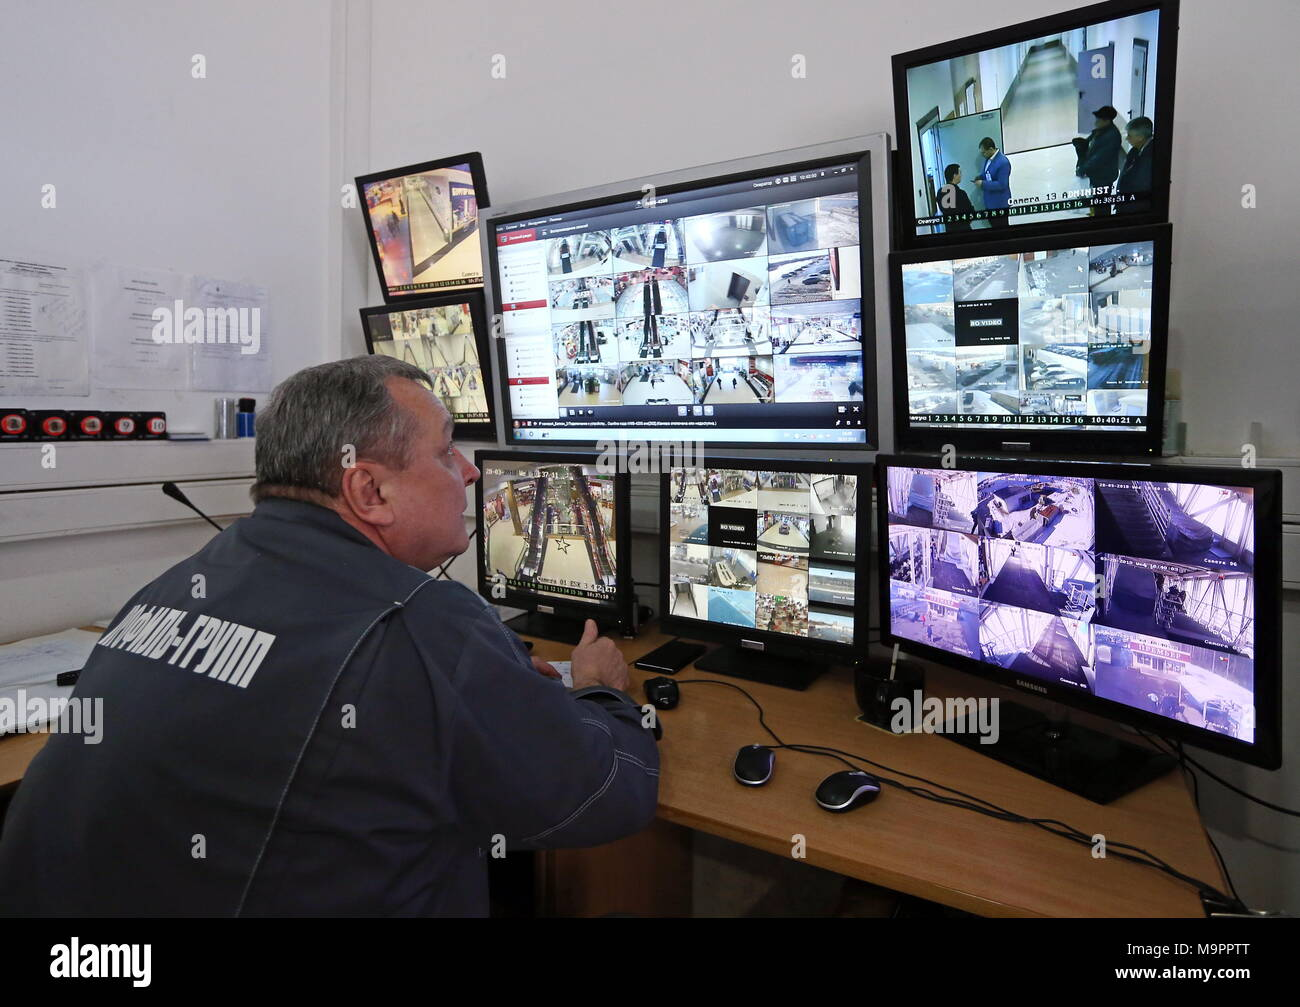 RYAZAN RUSSIA  MARCH 28 2018 A Security Guard In A Video Surveillance Room Of The Premyer Shooping Mall Russiau0027s Prosecutor Generalu0027s Office Has